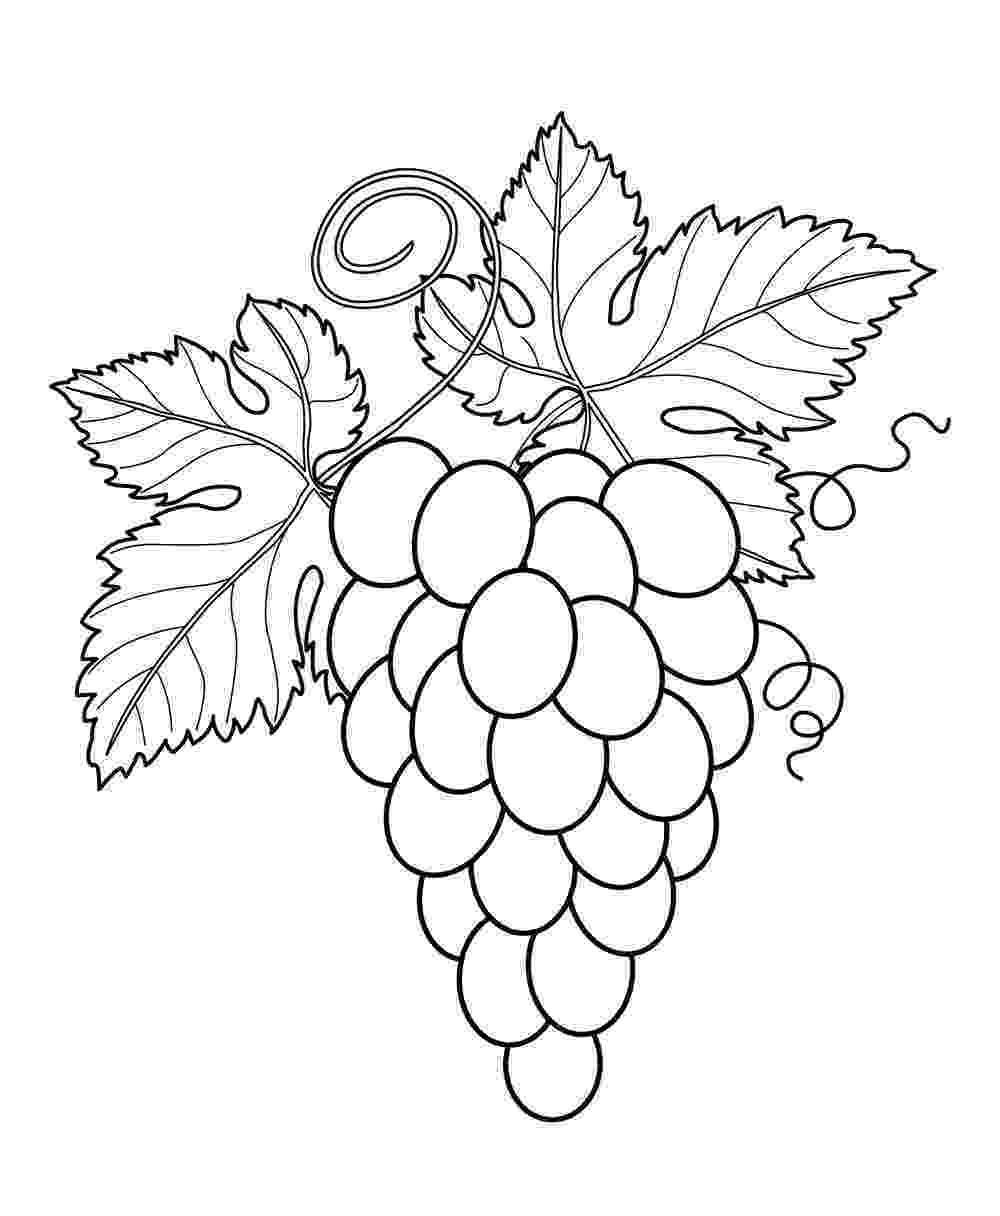 coloring book fruits coloring town fruits book coloring